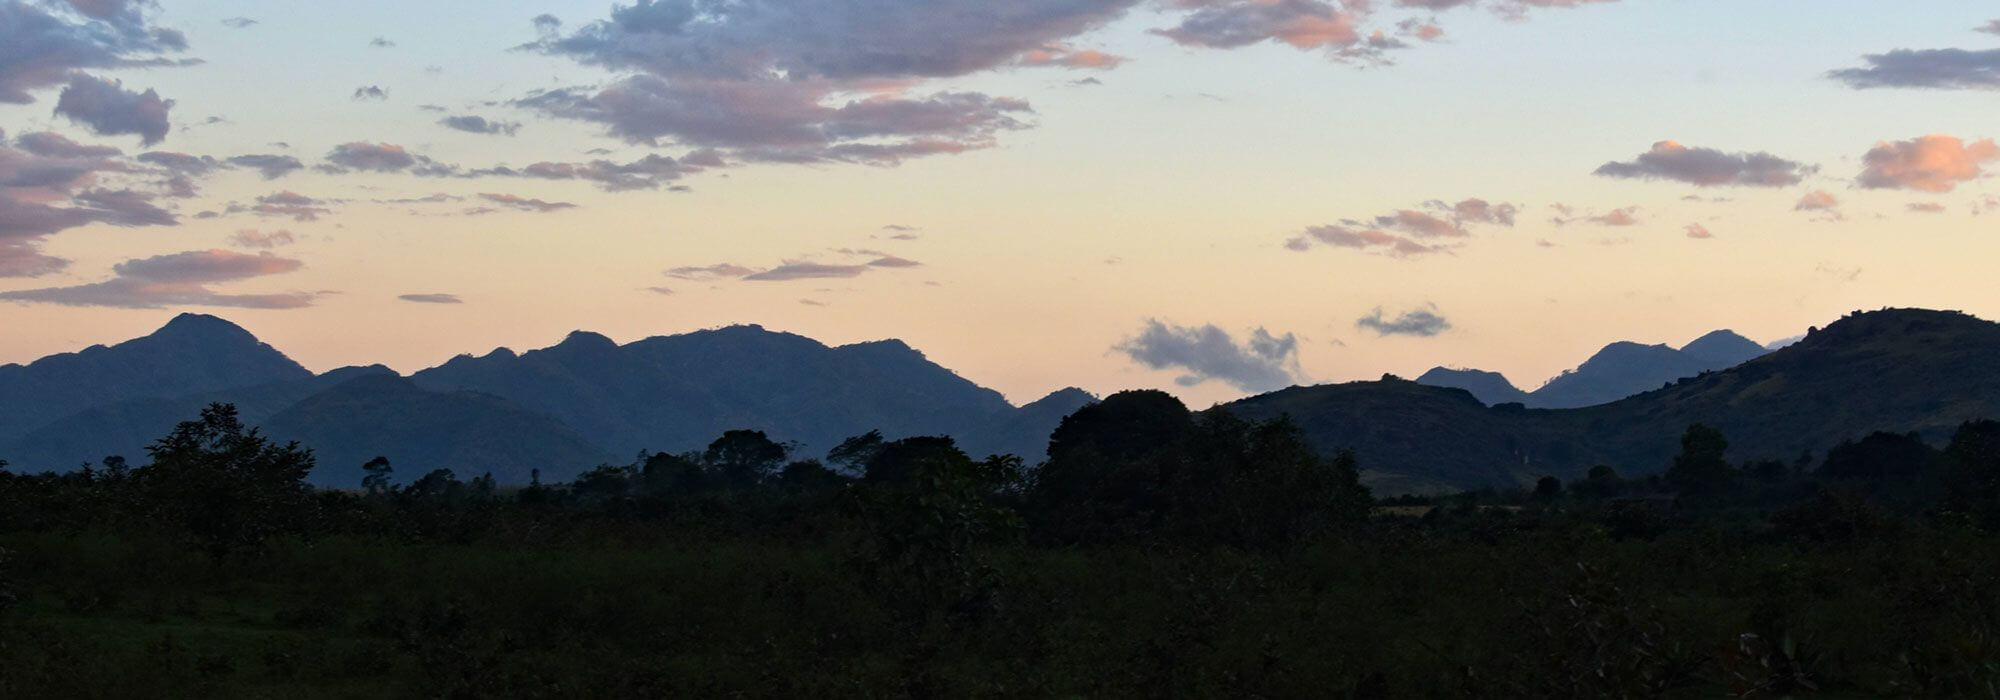 Scenic mountains in Andramanaka, Madagascar